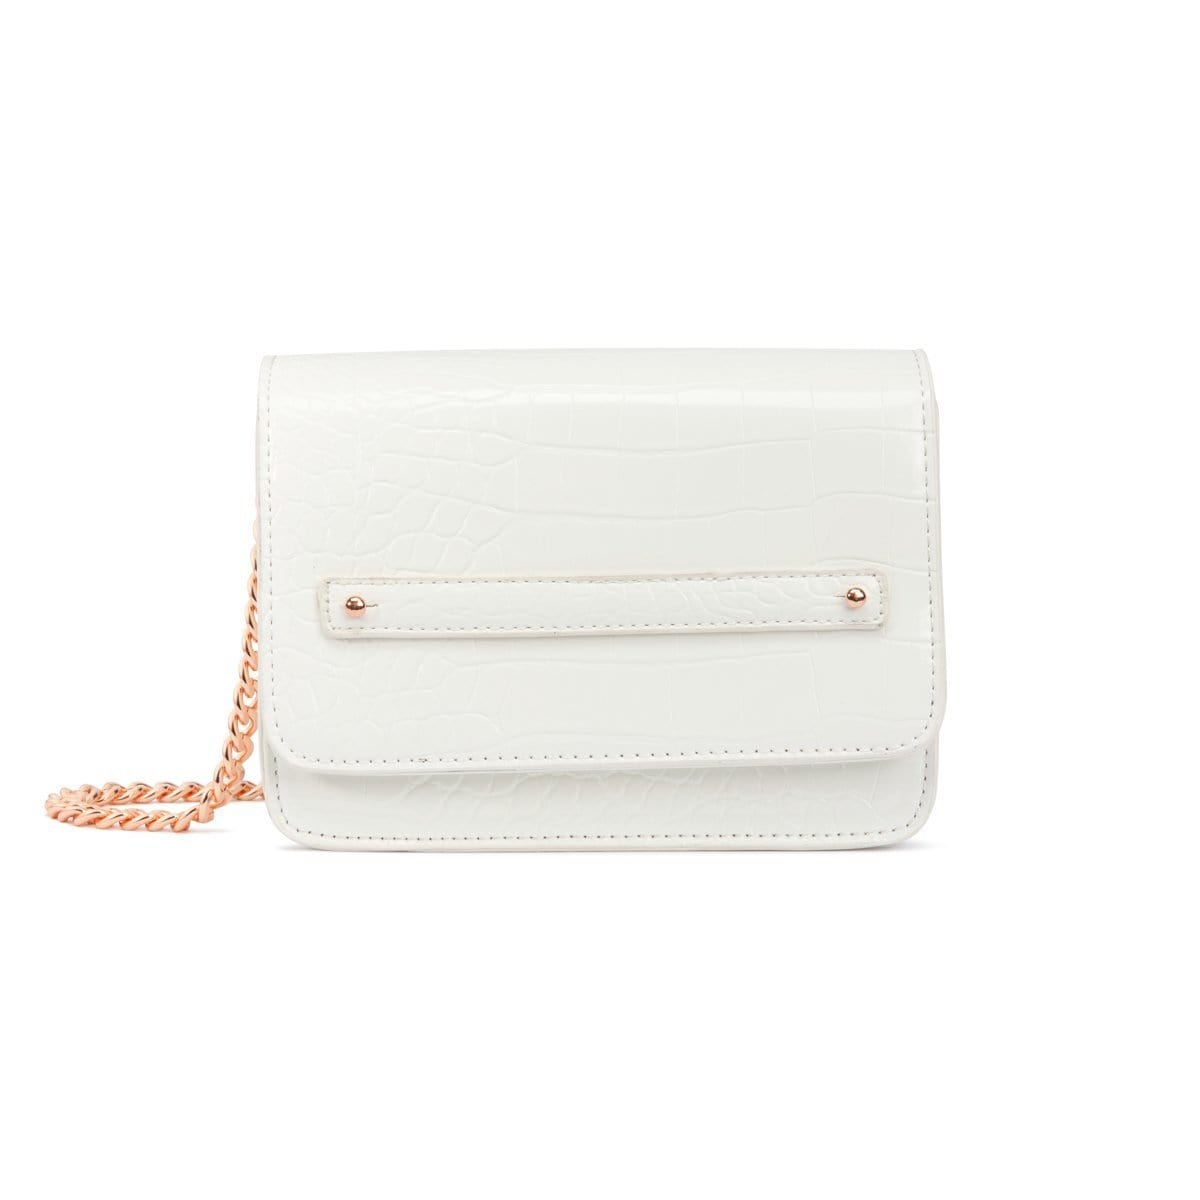 Personalise Crossbody Bag (Snow White/Rose Gold)